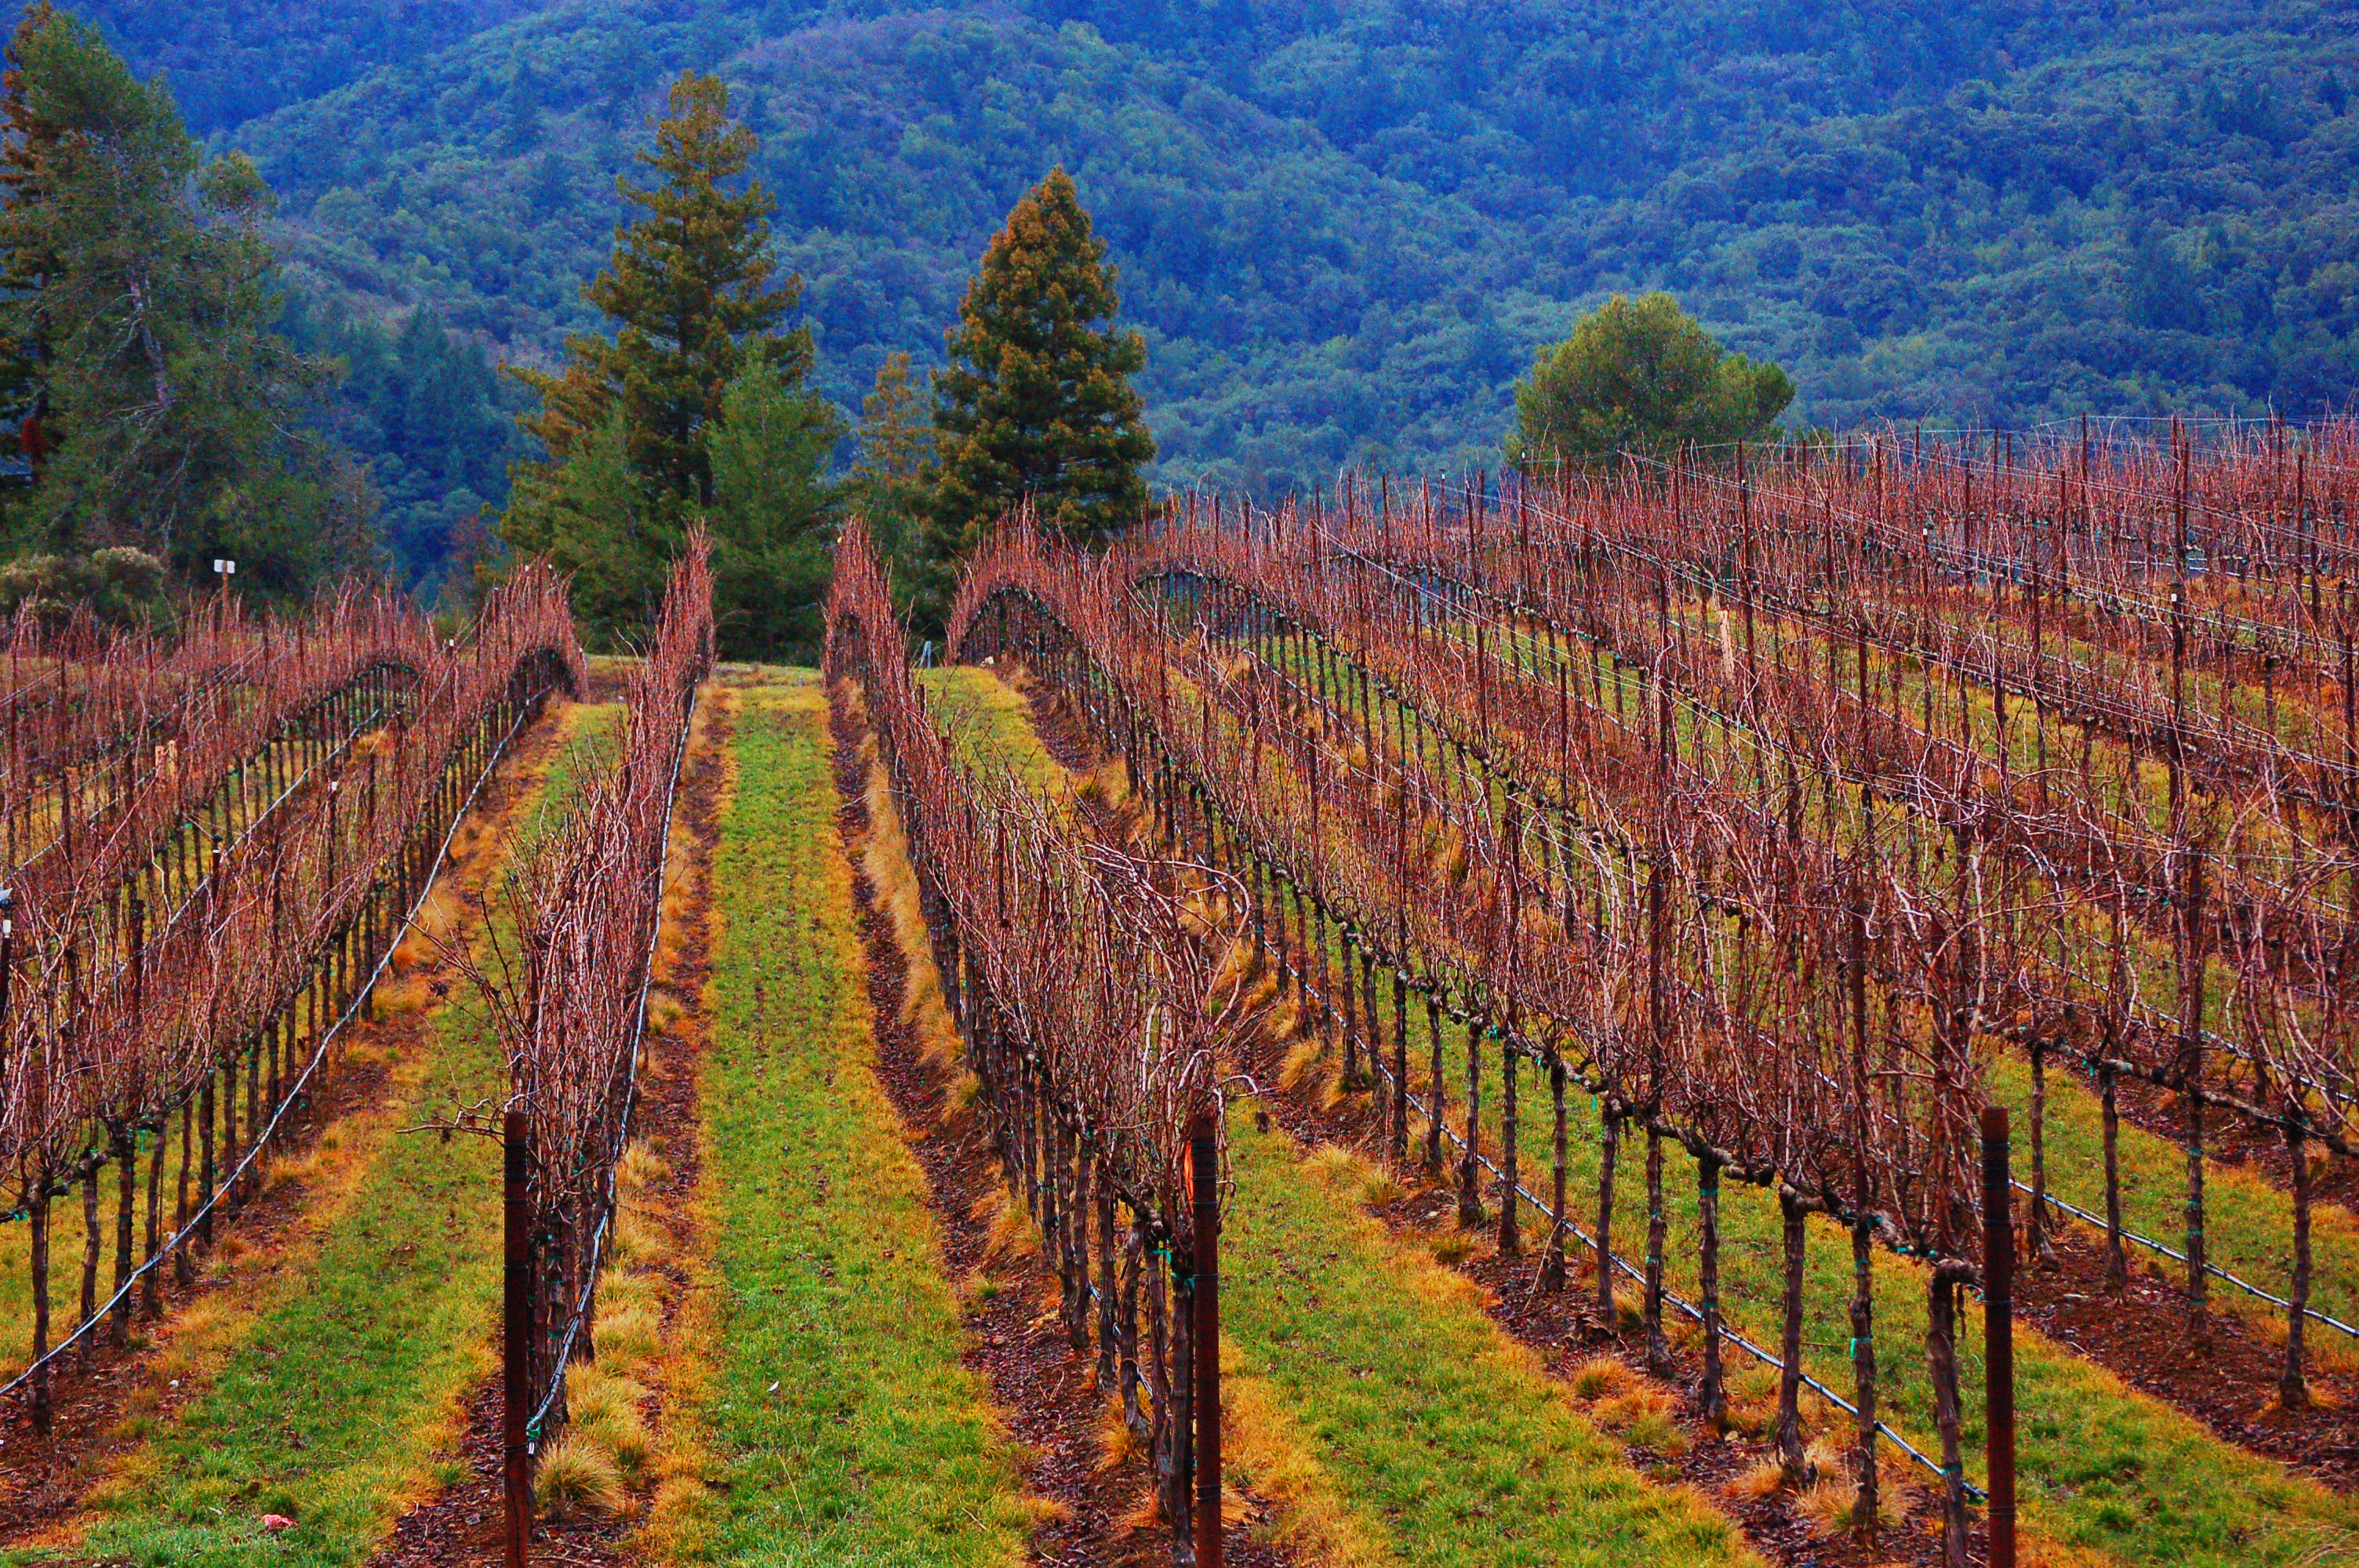 Vineyard in California